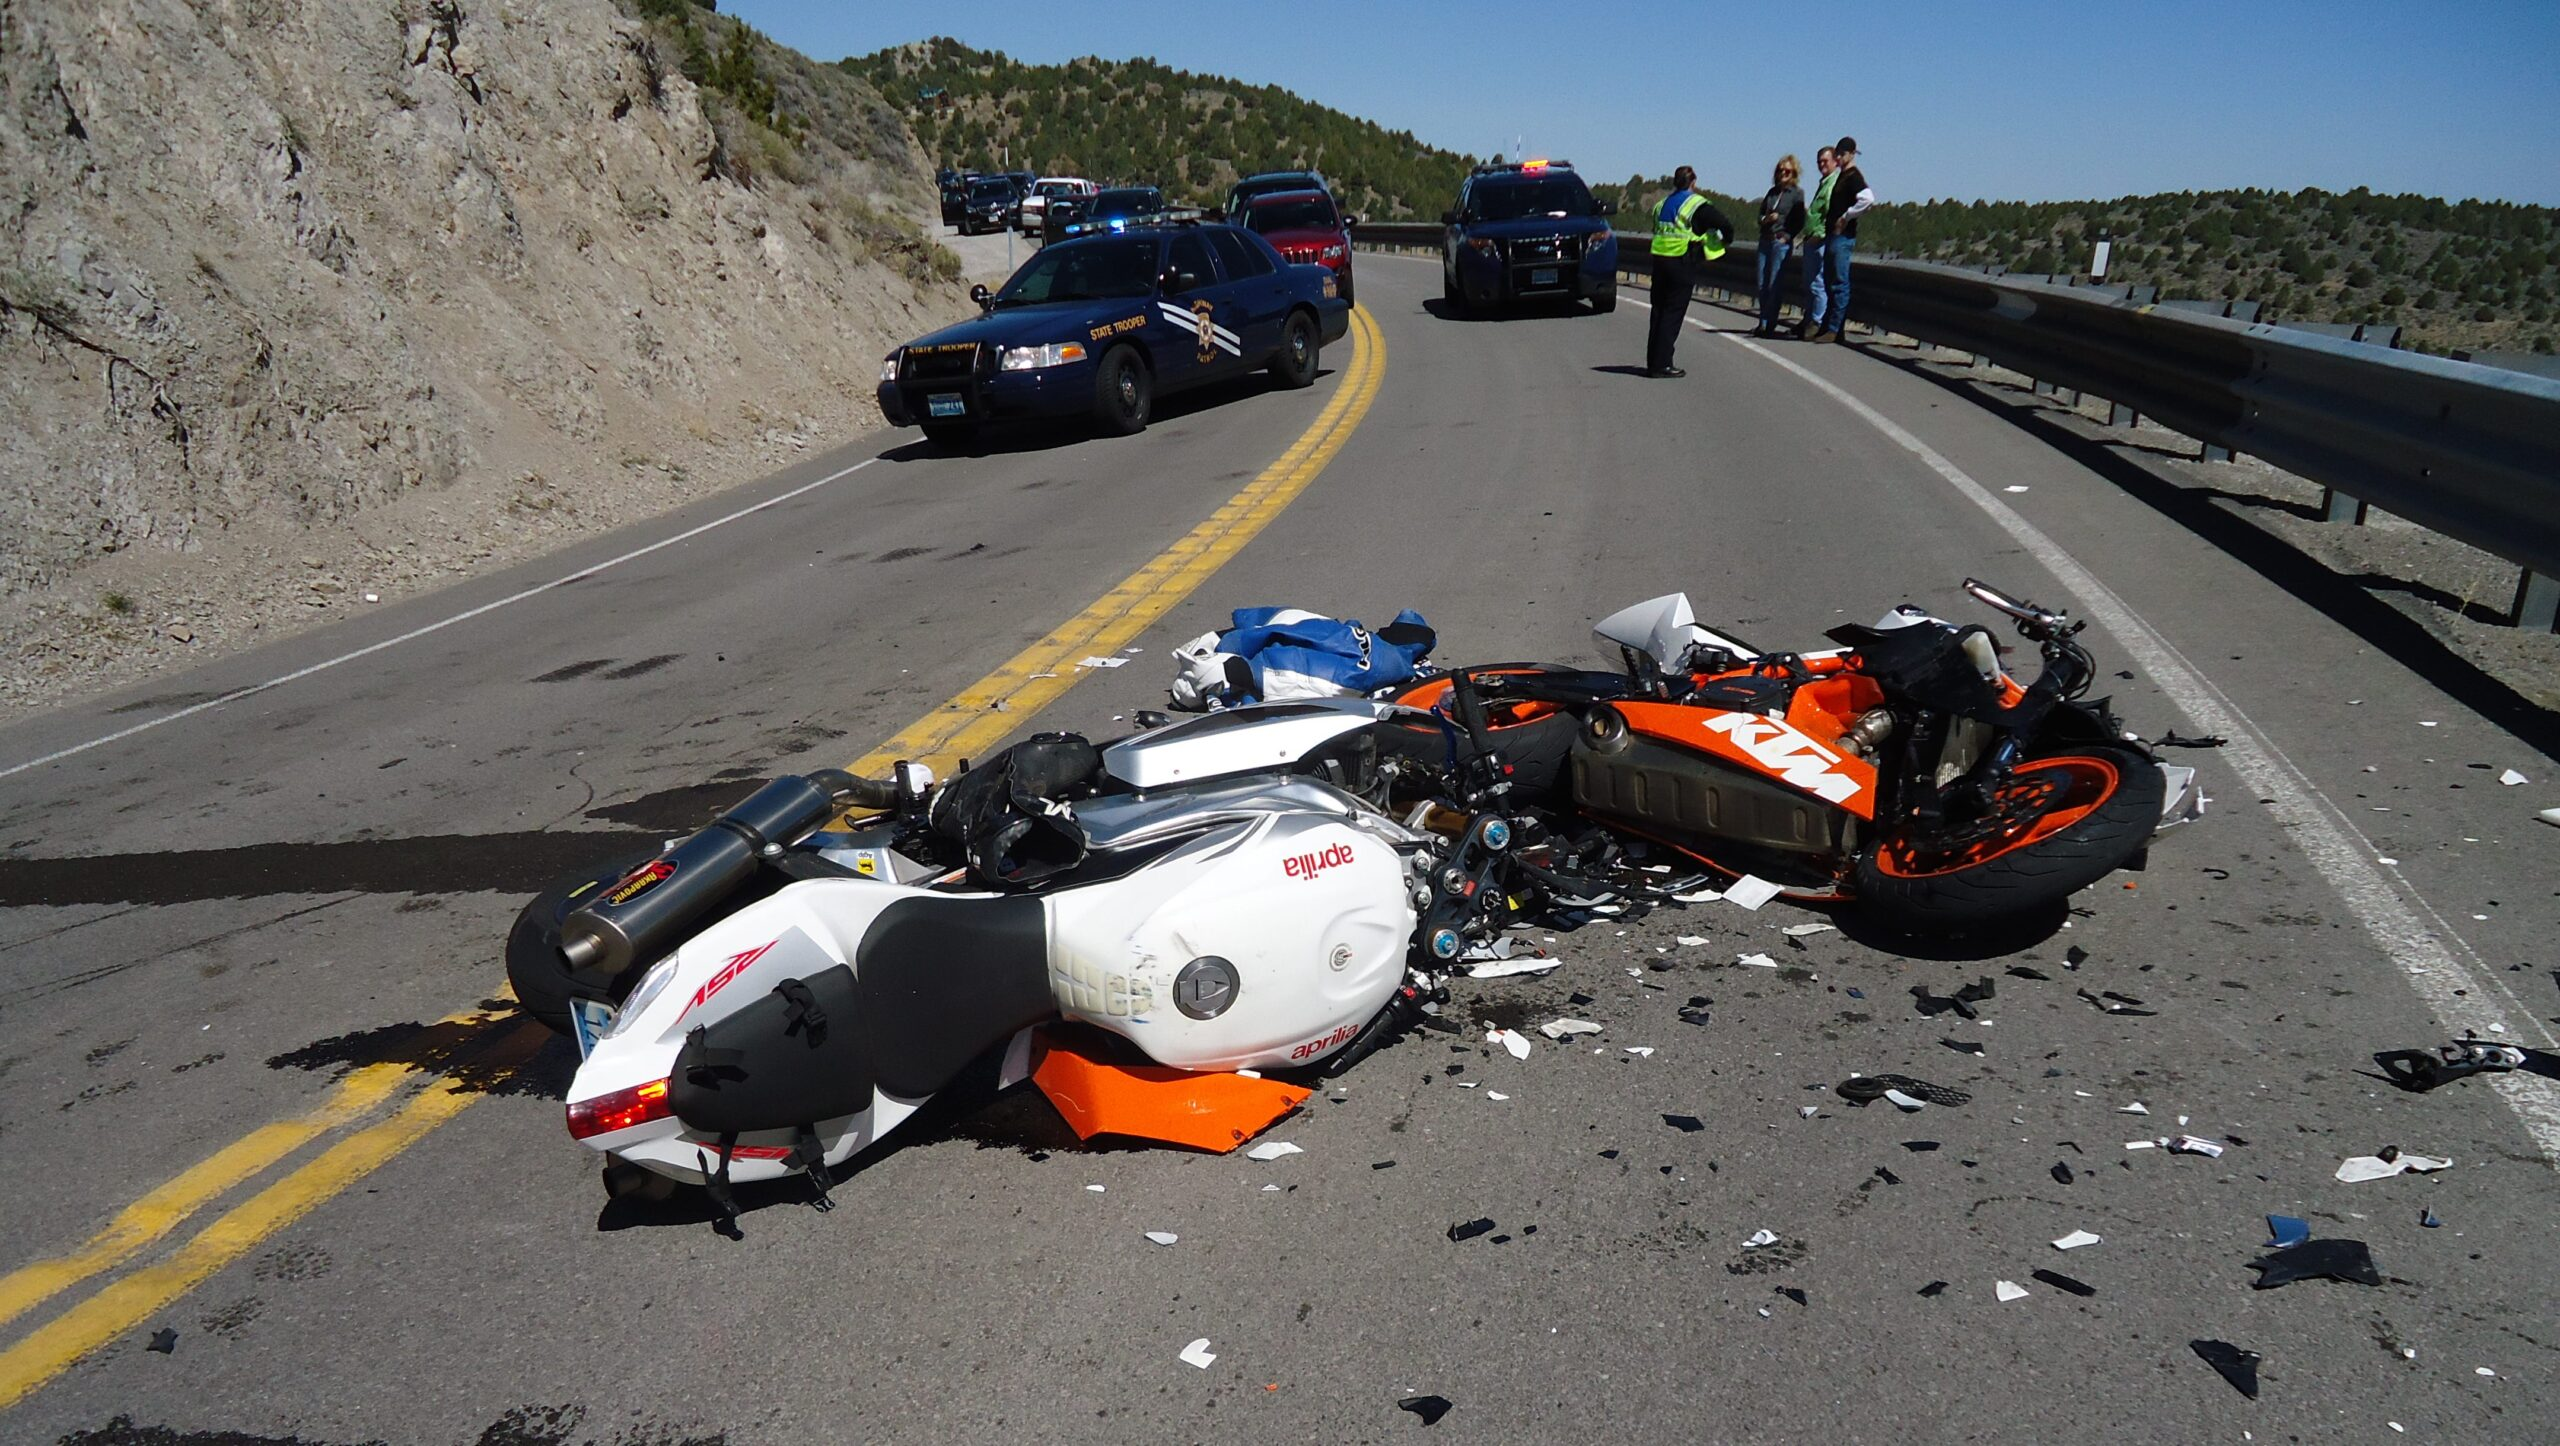 Motorcycle accident in RI with motorcycle laying on road with police around it and damage to the motorcycle